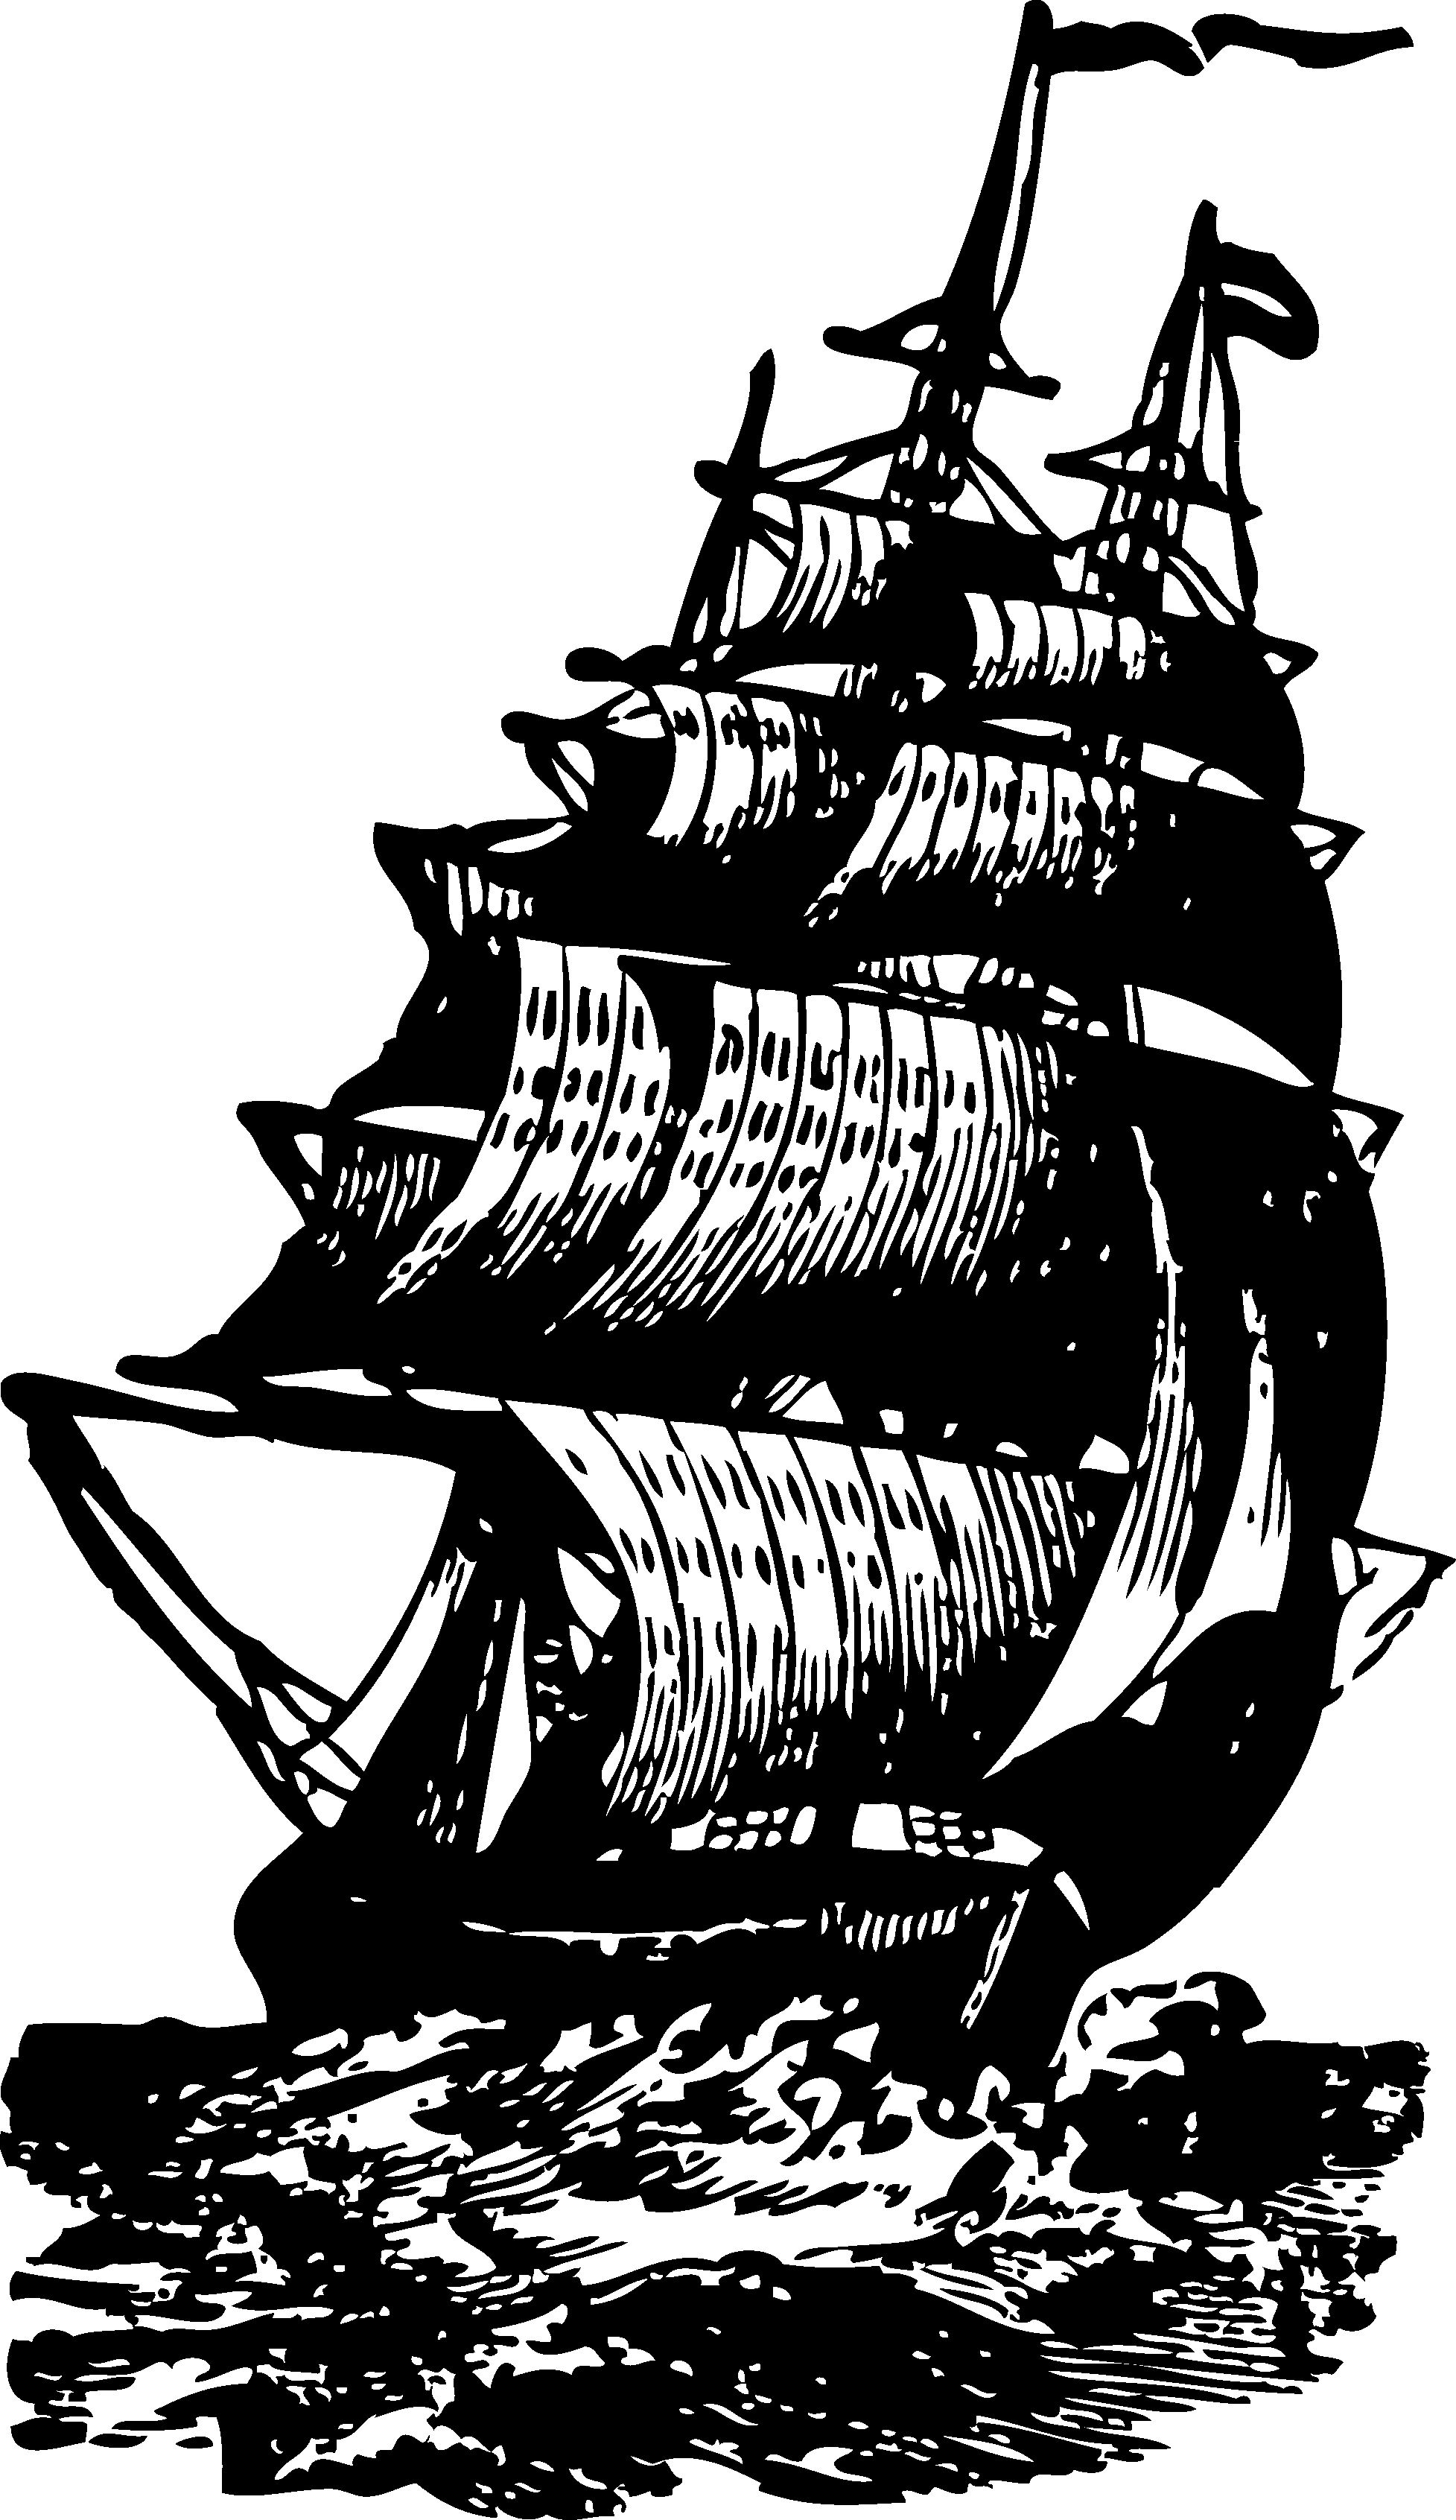 Boat clipart old fashioned Images boats free Cliparting and